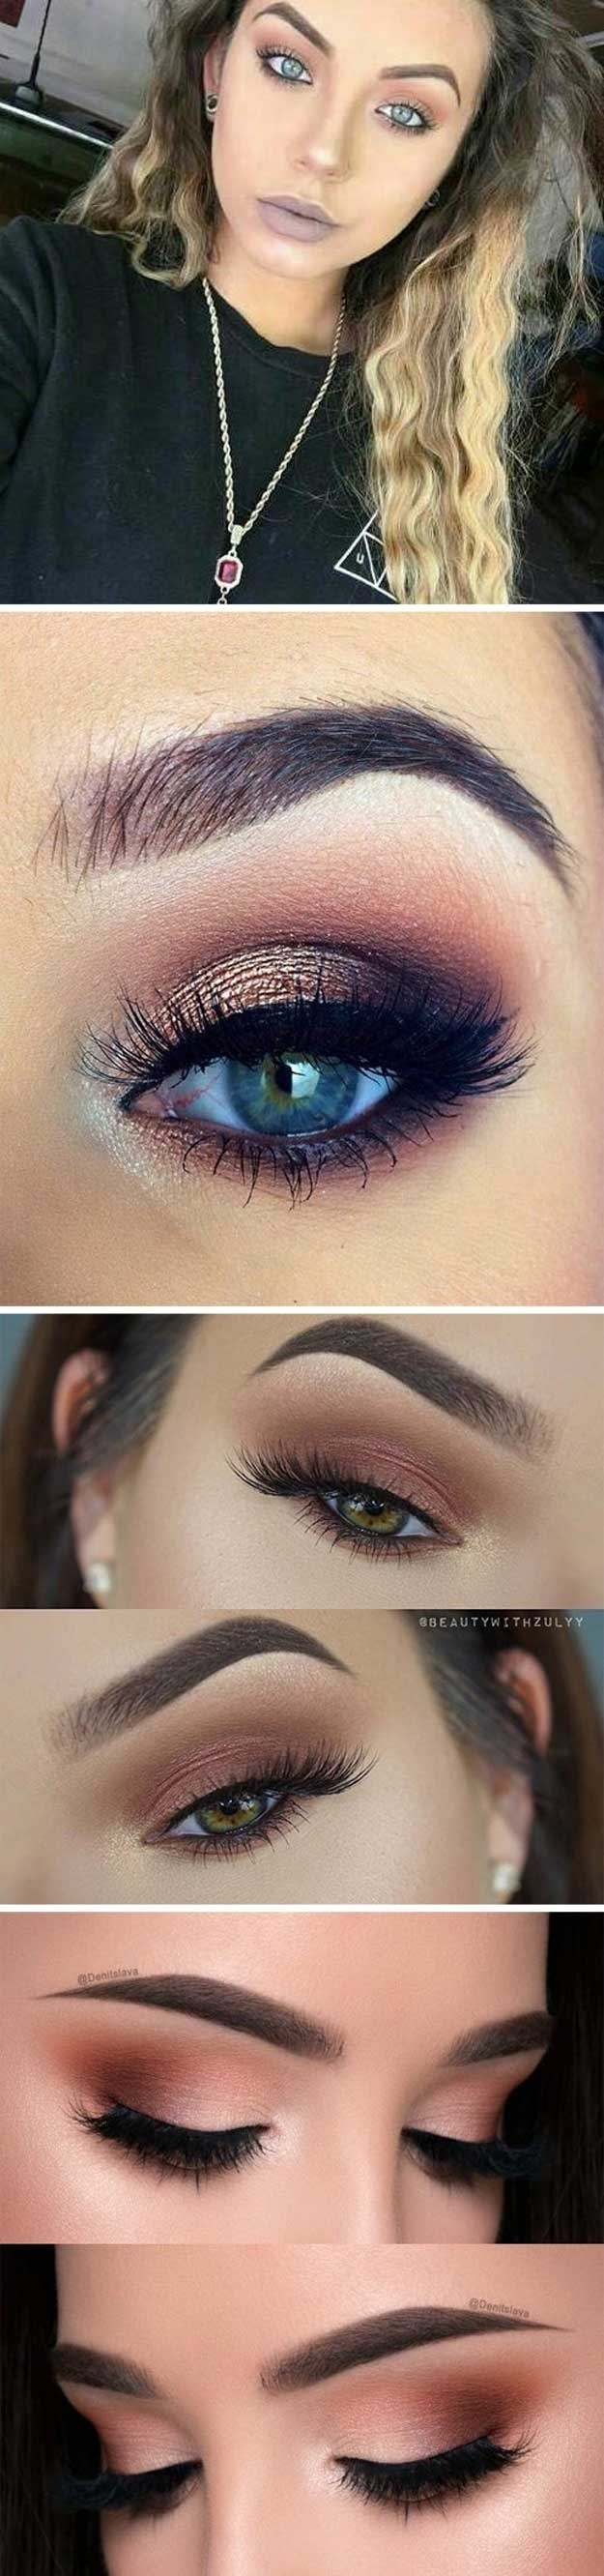 Makeup Tips For Brown Hair And Green Eyes | Saubhaya Makeup throughout Makeup Tips For Green Eyes And Dark Brown Hair